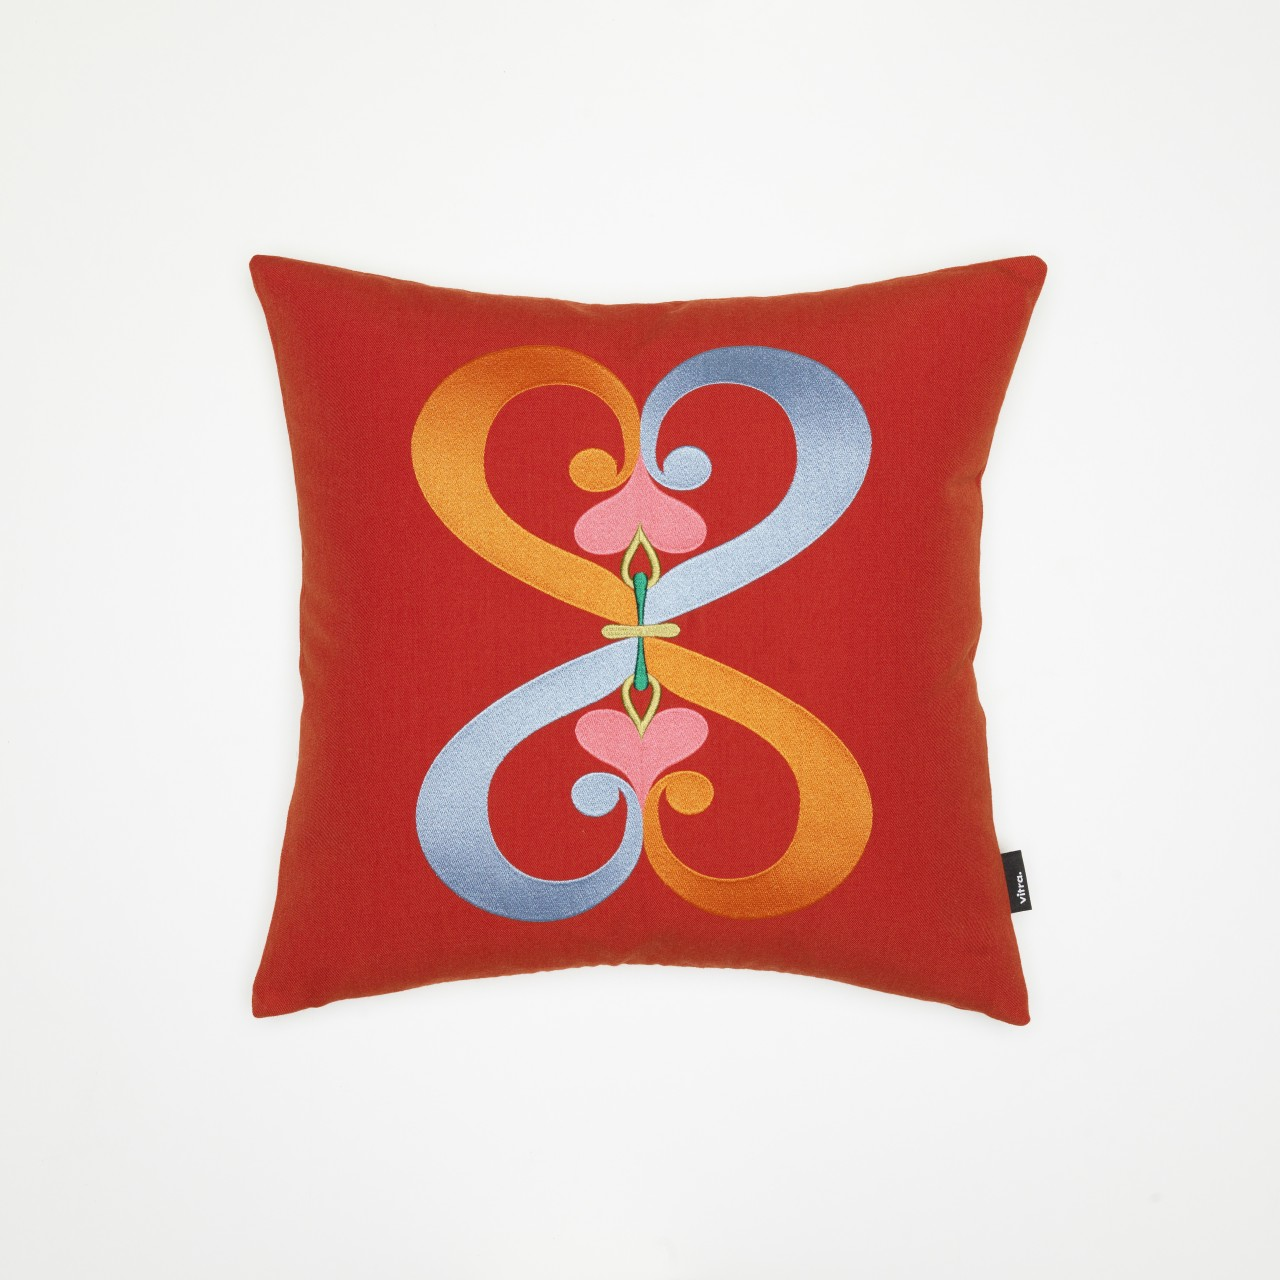 Embroidered Pillows: Double Heart